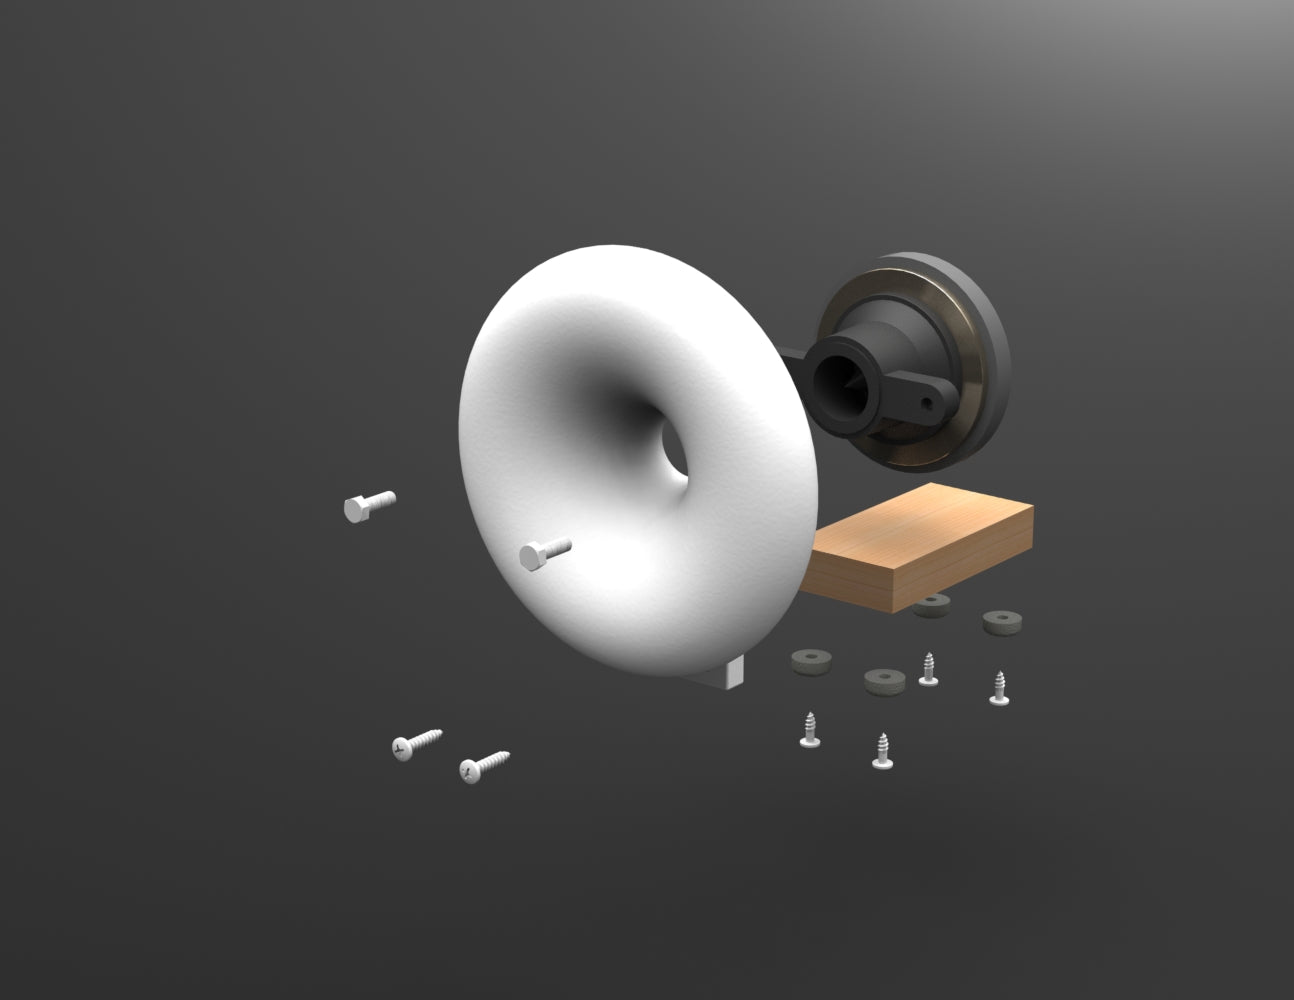 15cm Diameter ES Horn 3D CAD Model